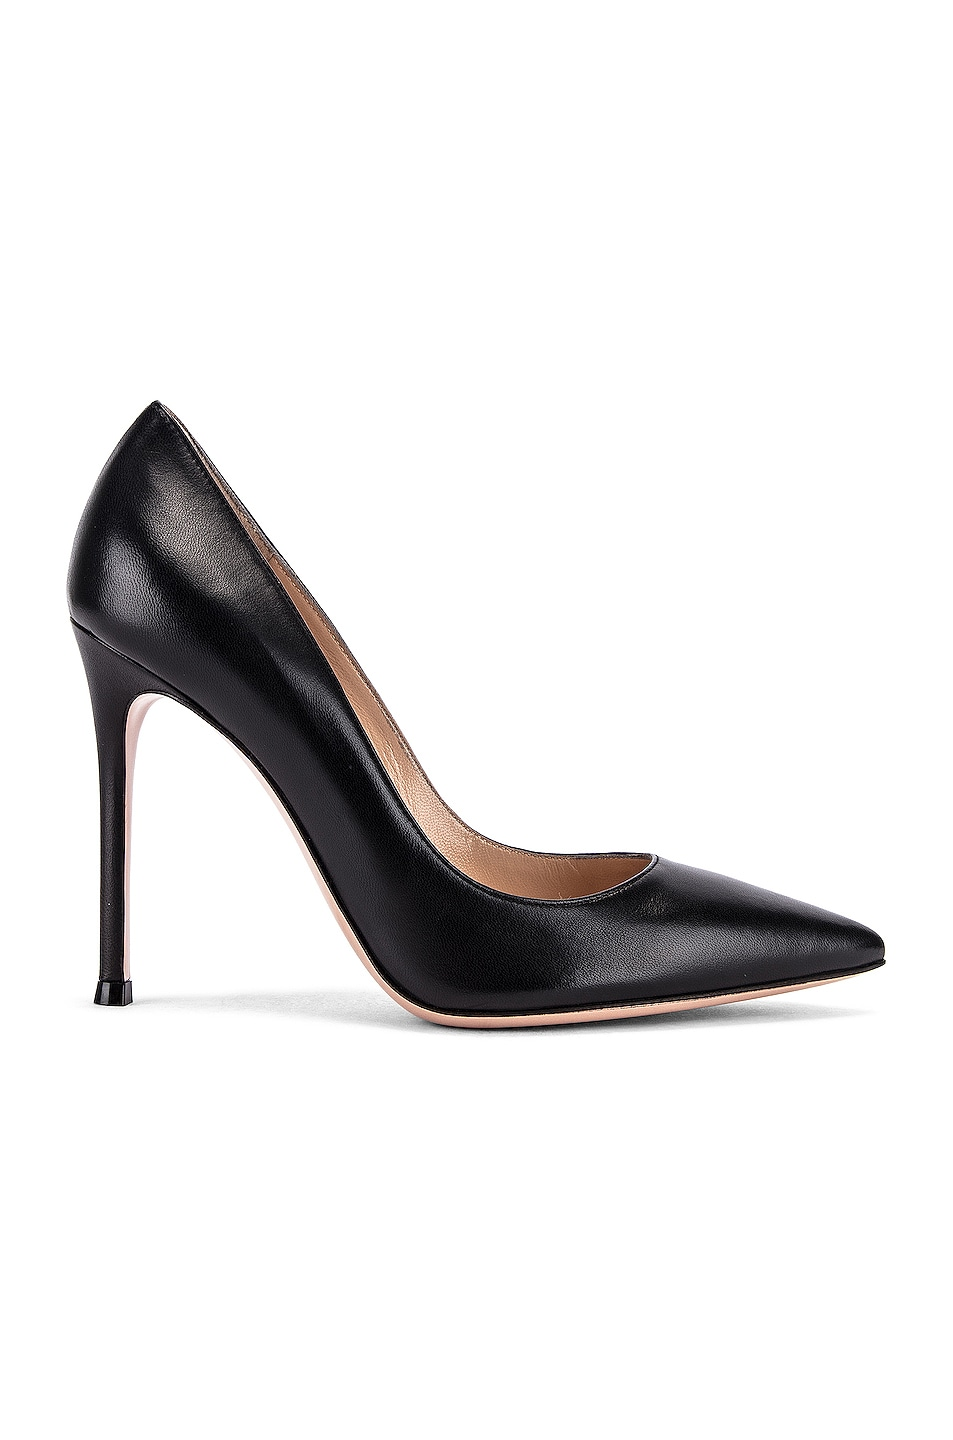 Image 1 of Gianvito Rossi Leather Pumps in Black